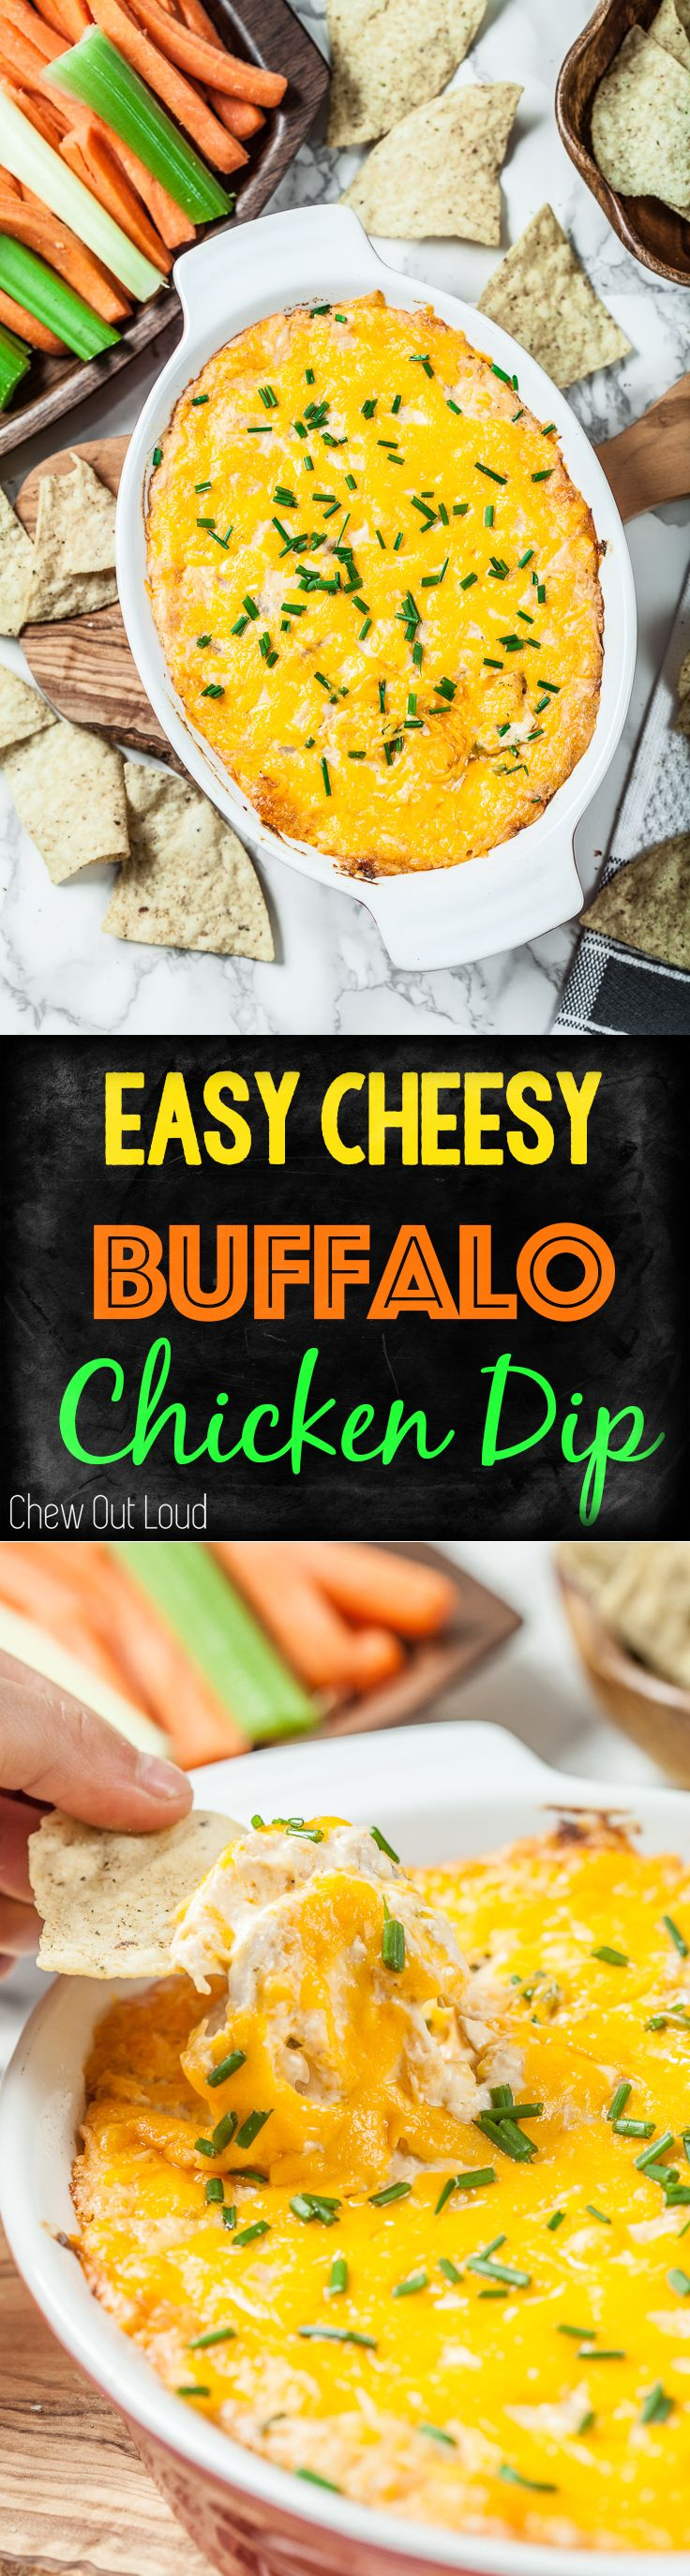 Cheesy Buffalo Chicken Dip! SOO creamy delicious and EASY. Game days, holidays, parties.  #appetizer, #gameday #holiday #partyfood #recipe #food #chewoutloud #buffalo #chicken #dip #fingerfood #cheese  www.chewoutloud.com